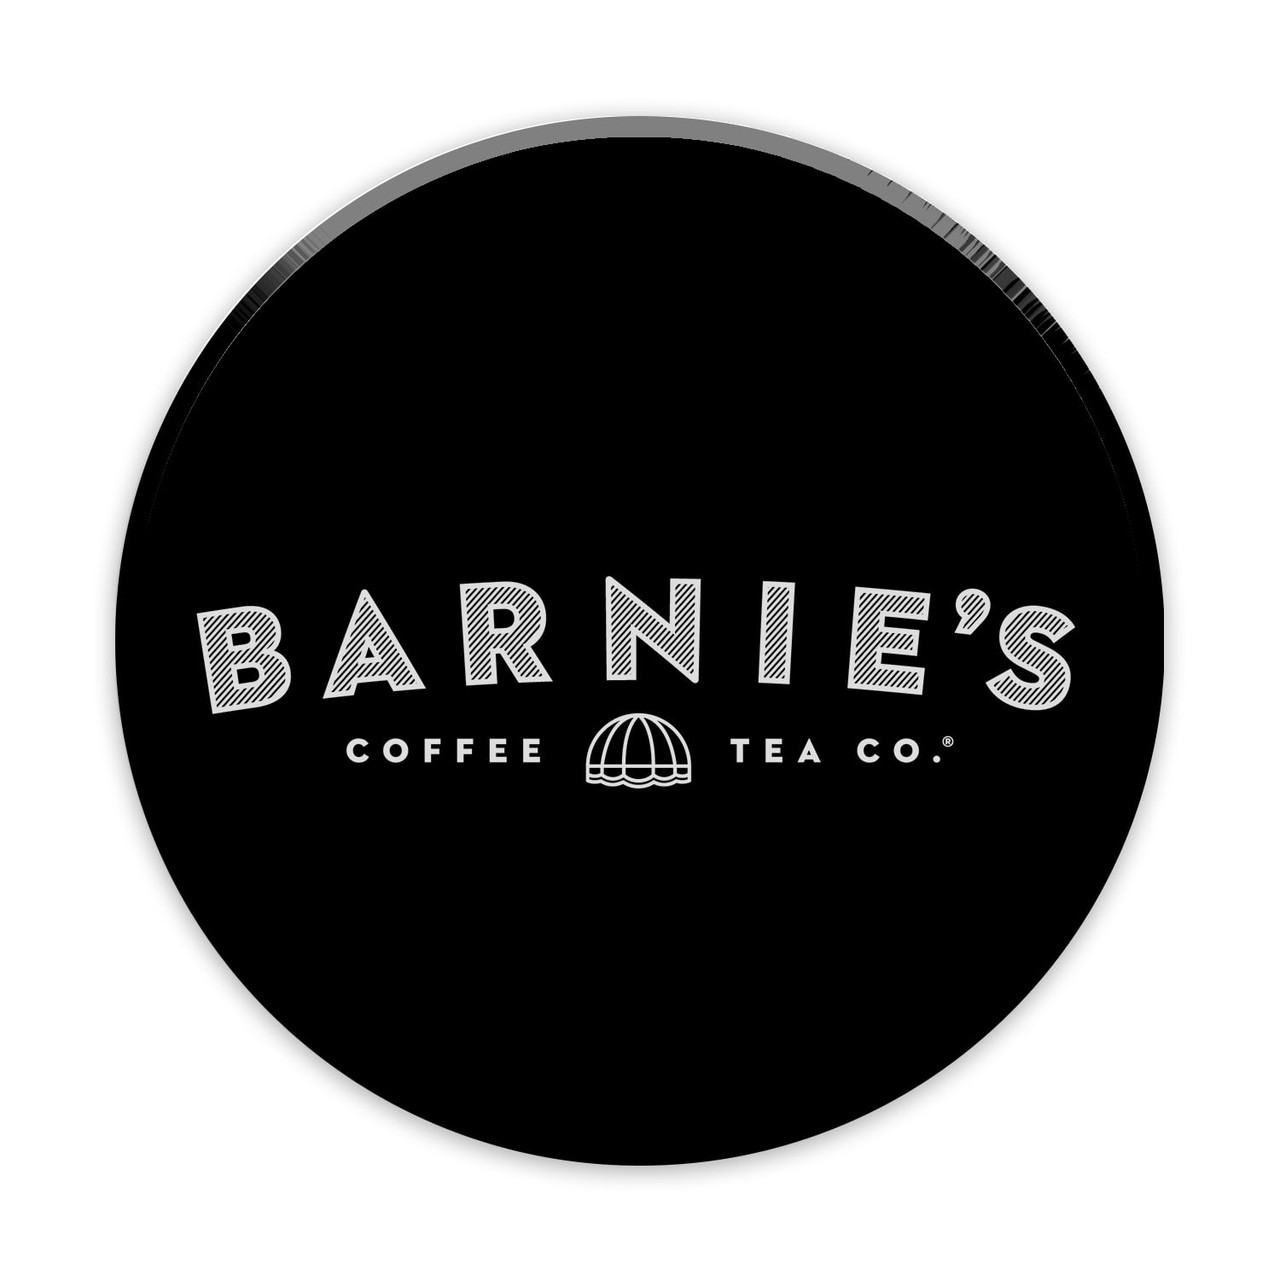 Southern Pecan Flavored Coffee from Barnie's